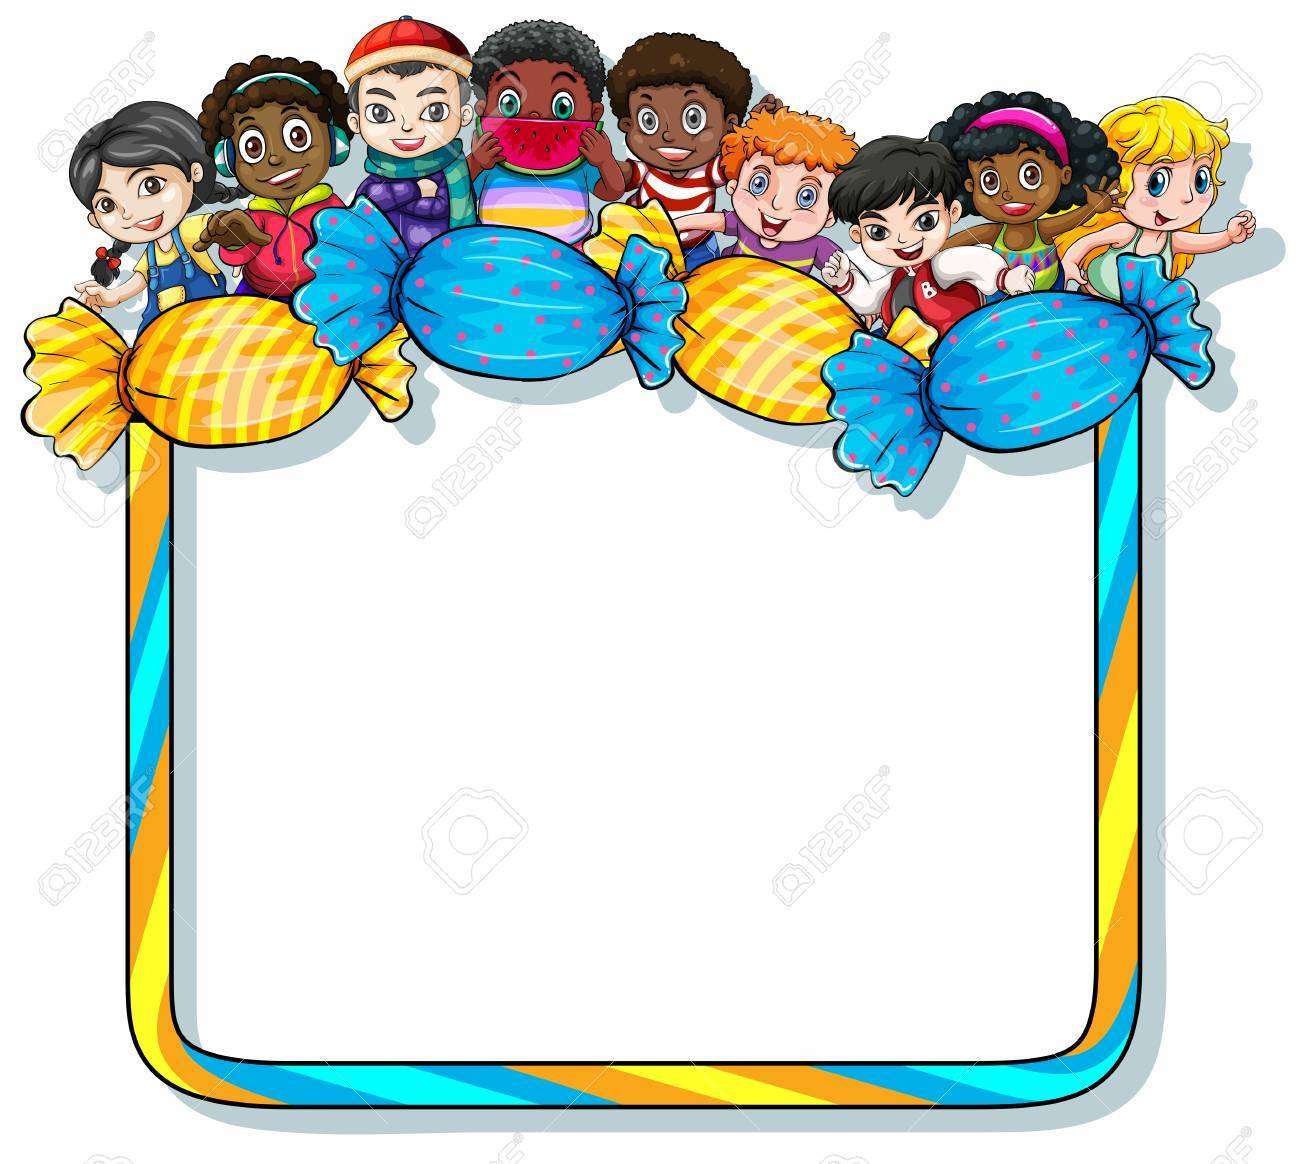 Empty Frame With Candies And Kids On A White Background Royalty Free ...